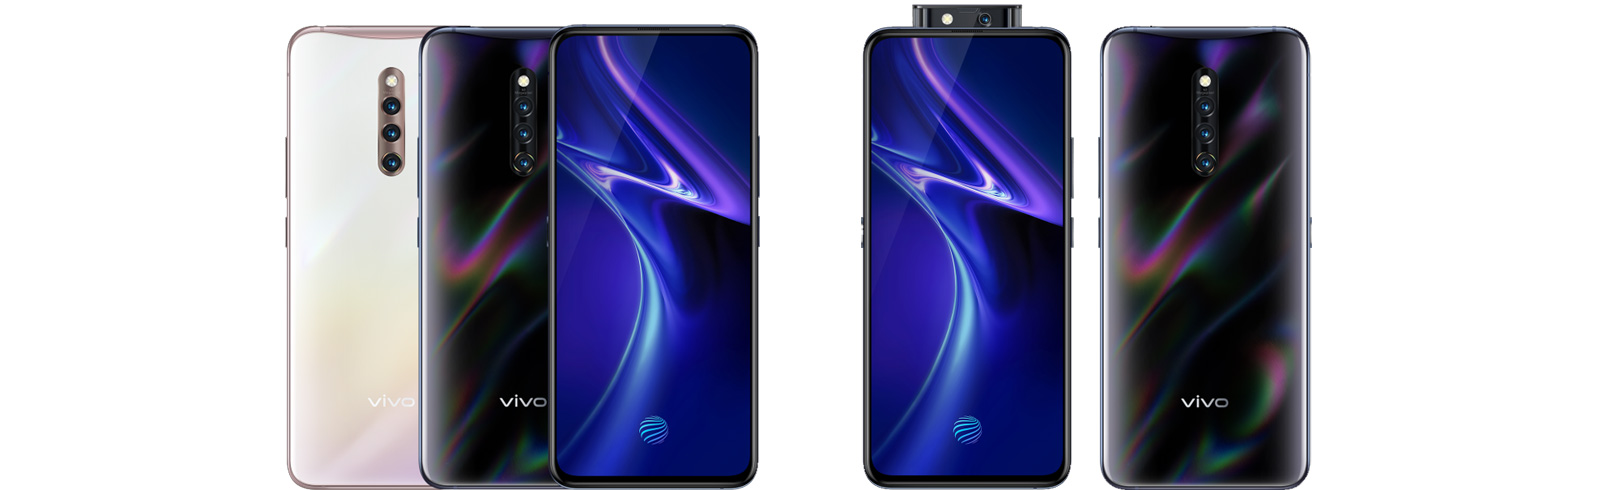 Vivo X27 Pro goes on sale in China priced at CNY 3998 (USD 595)